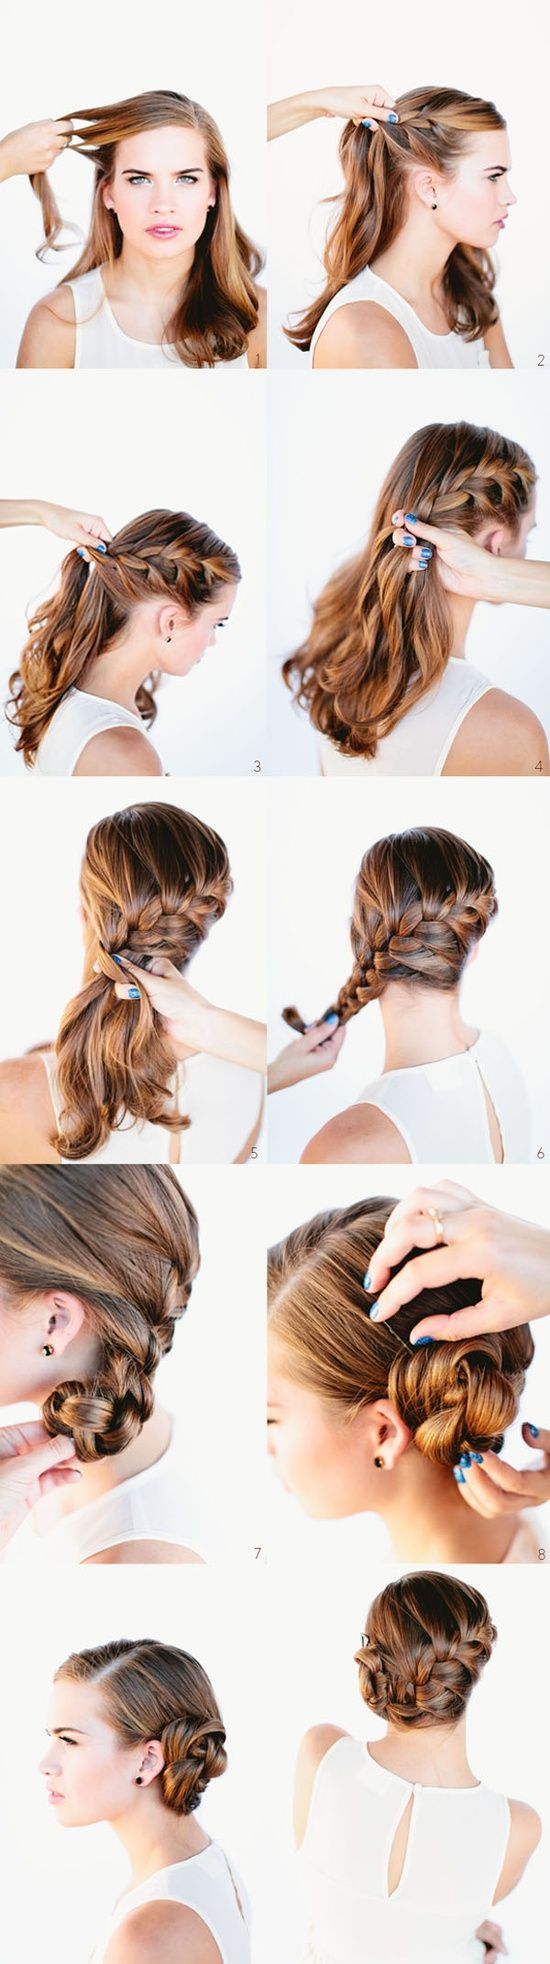 French Braid Bun Hair Tutorial. Bridesmaid idea?